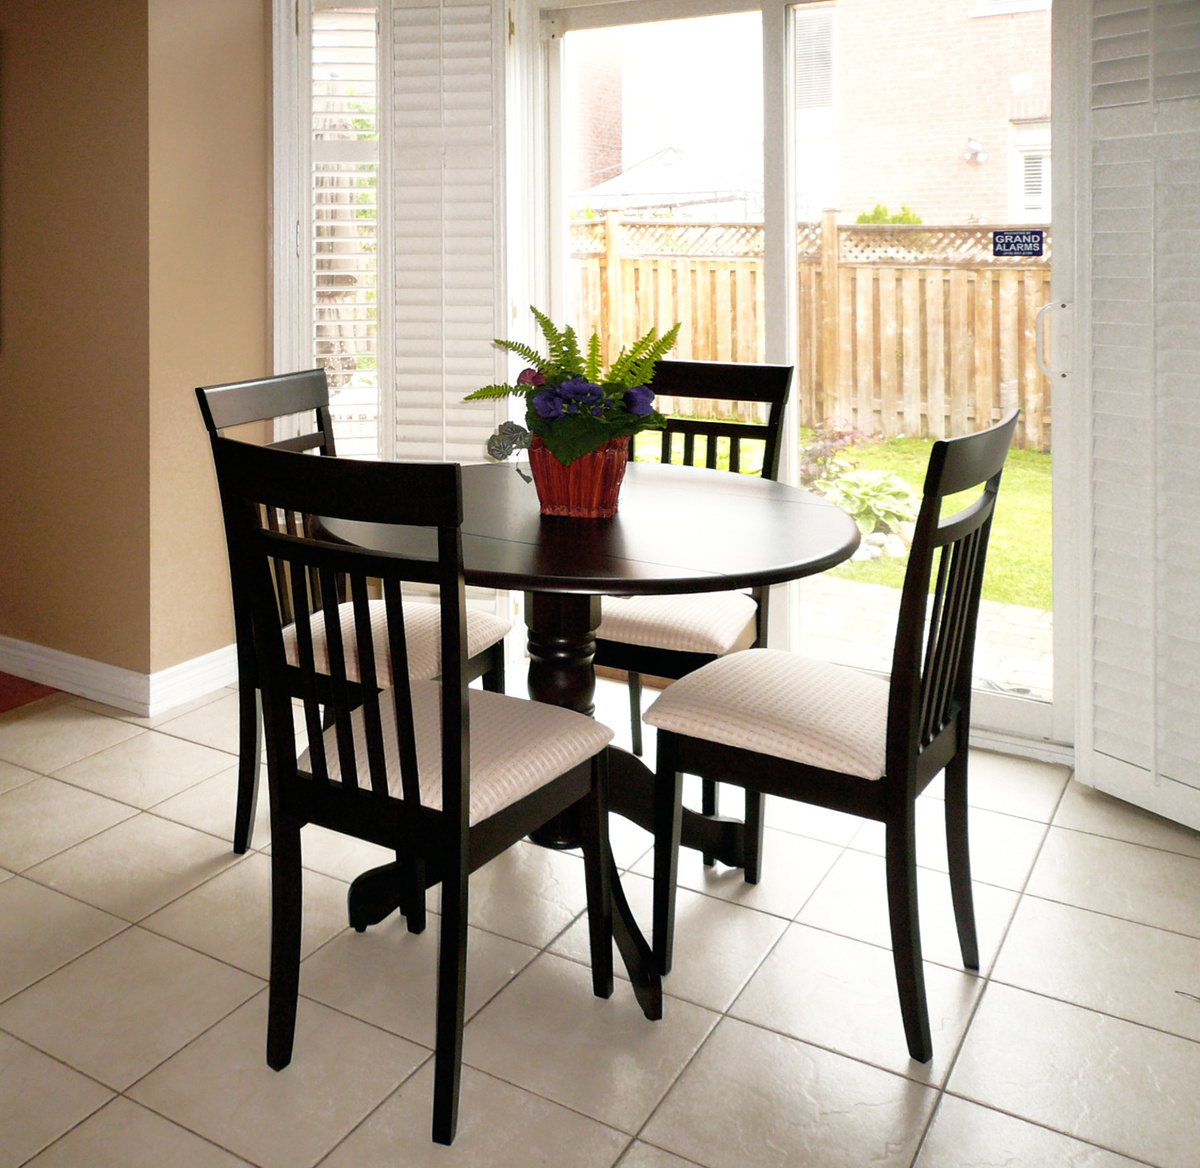 Downtown Round Table Toronto Furniture Rental For Home Staging By Stagers Source